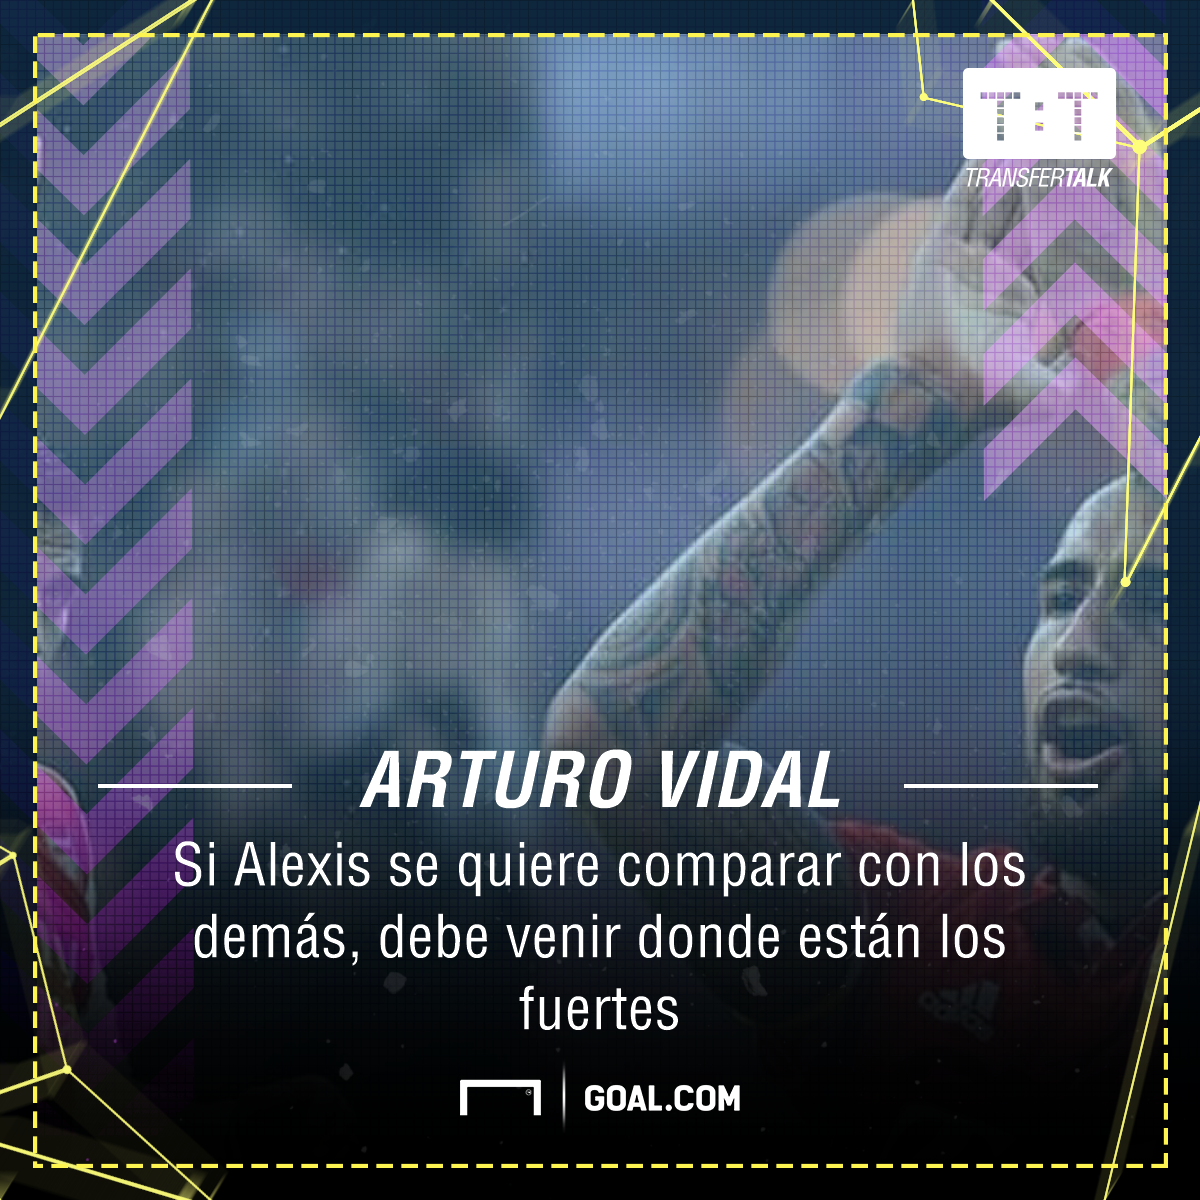 Arturo Vidal comment on Alexis Sánchez possible move to Germany